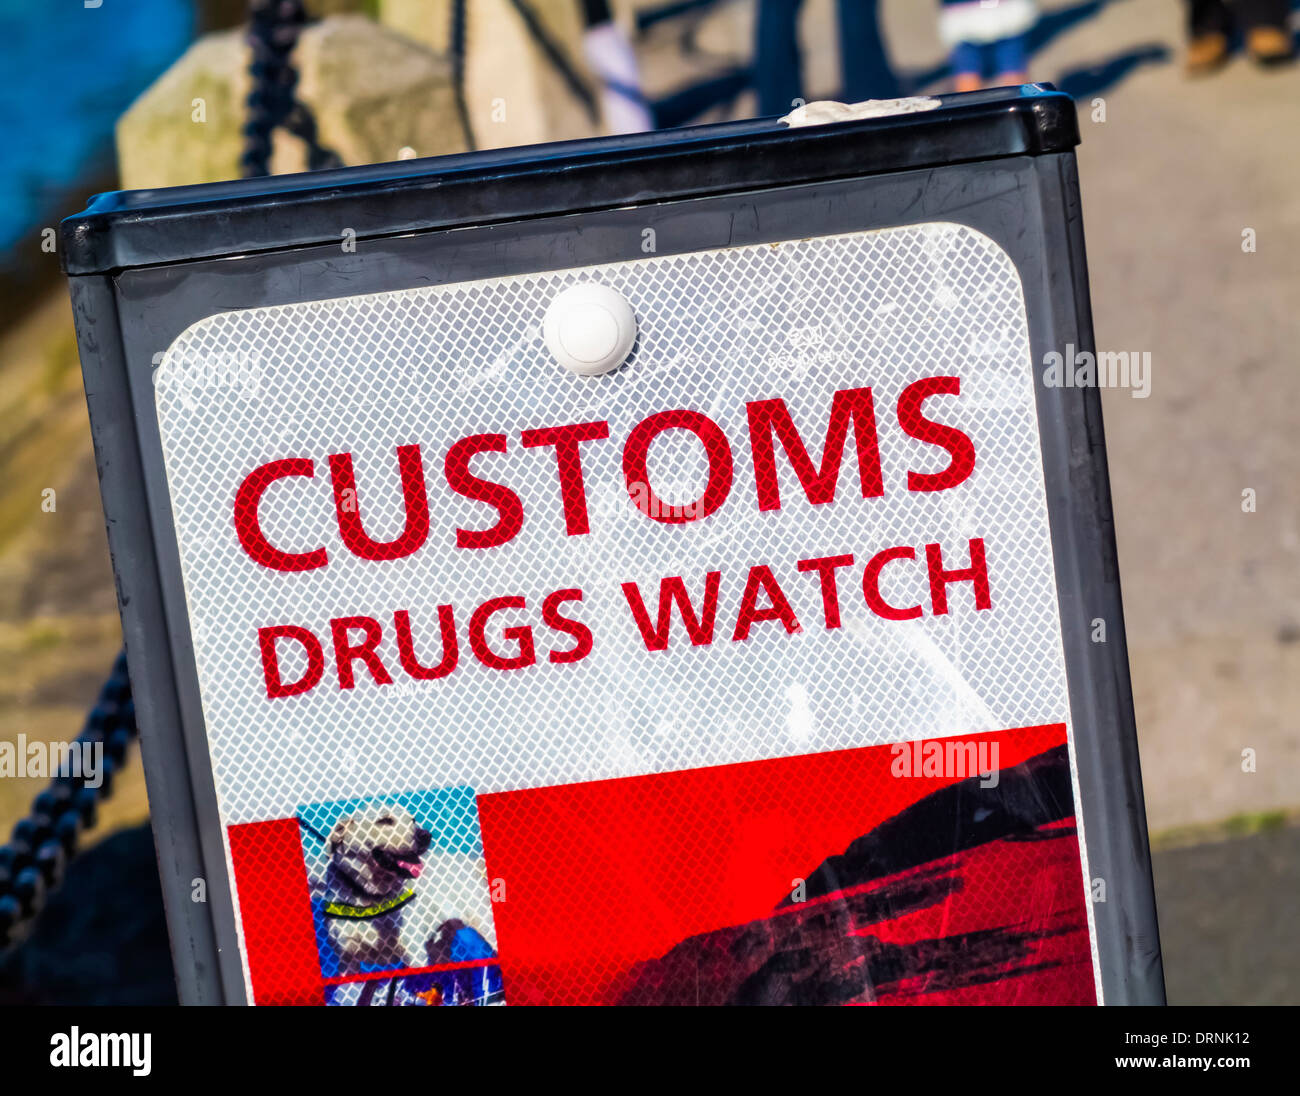 Customs drug watch sign - Stock Image